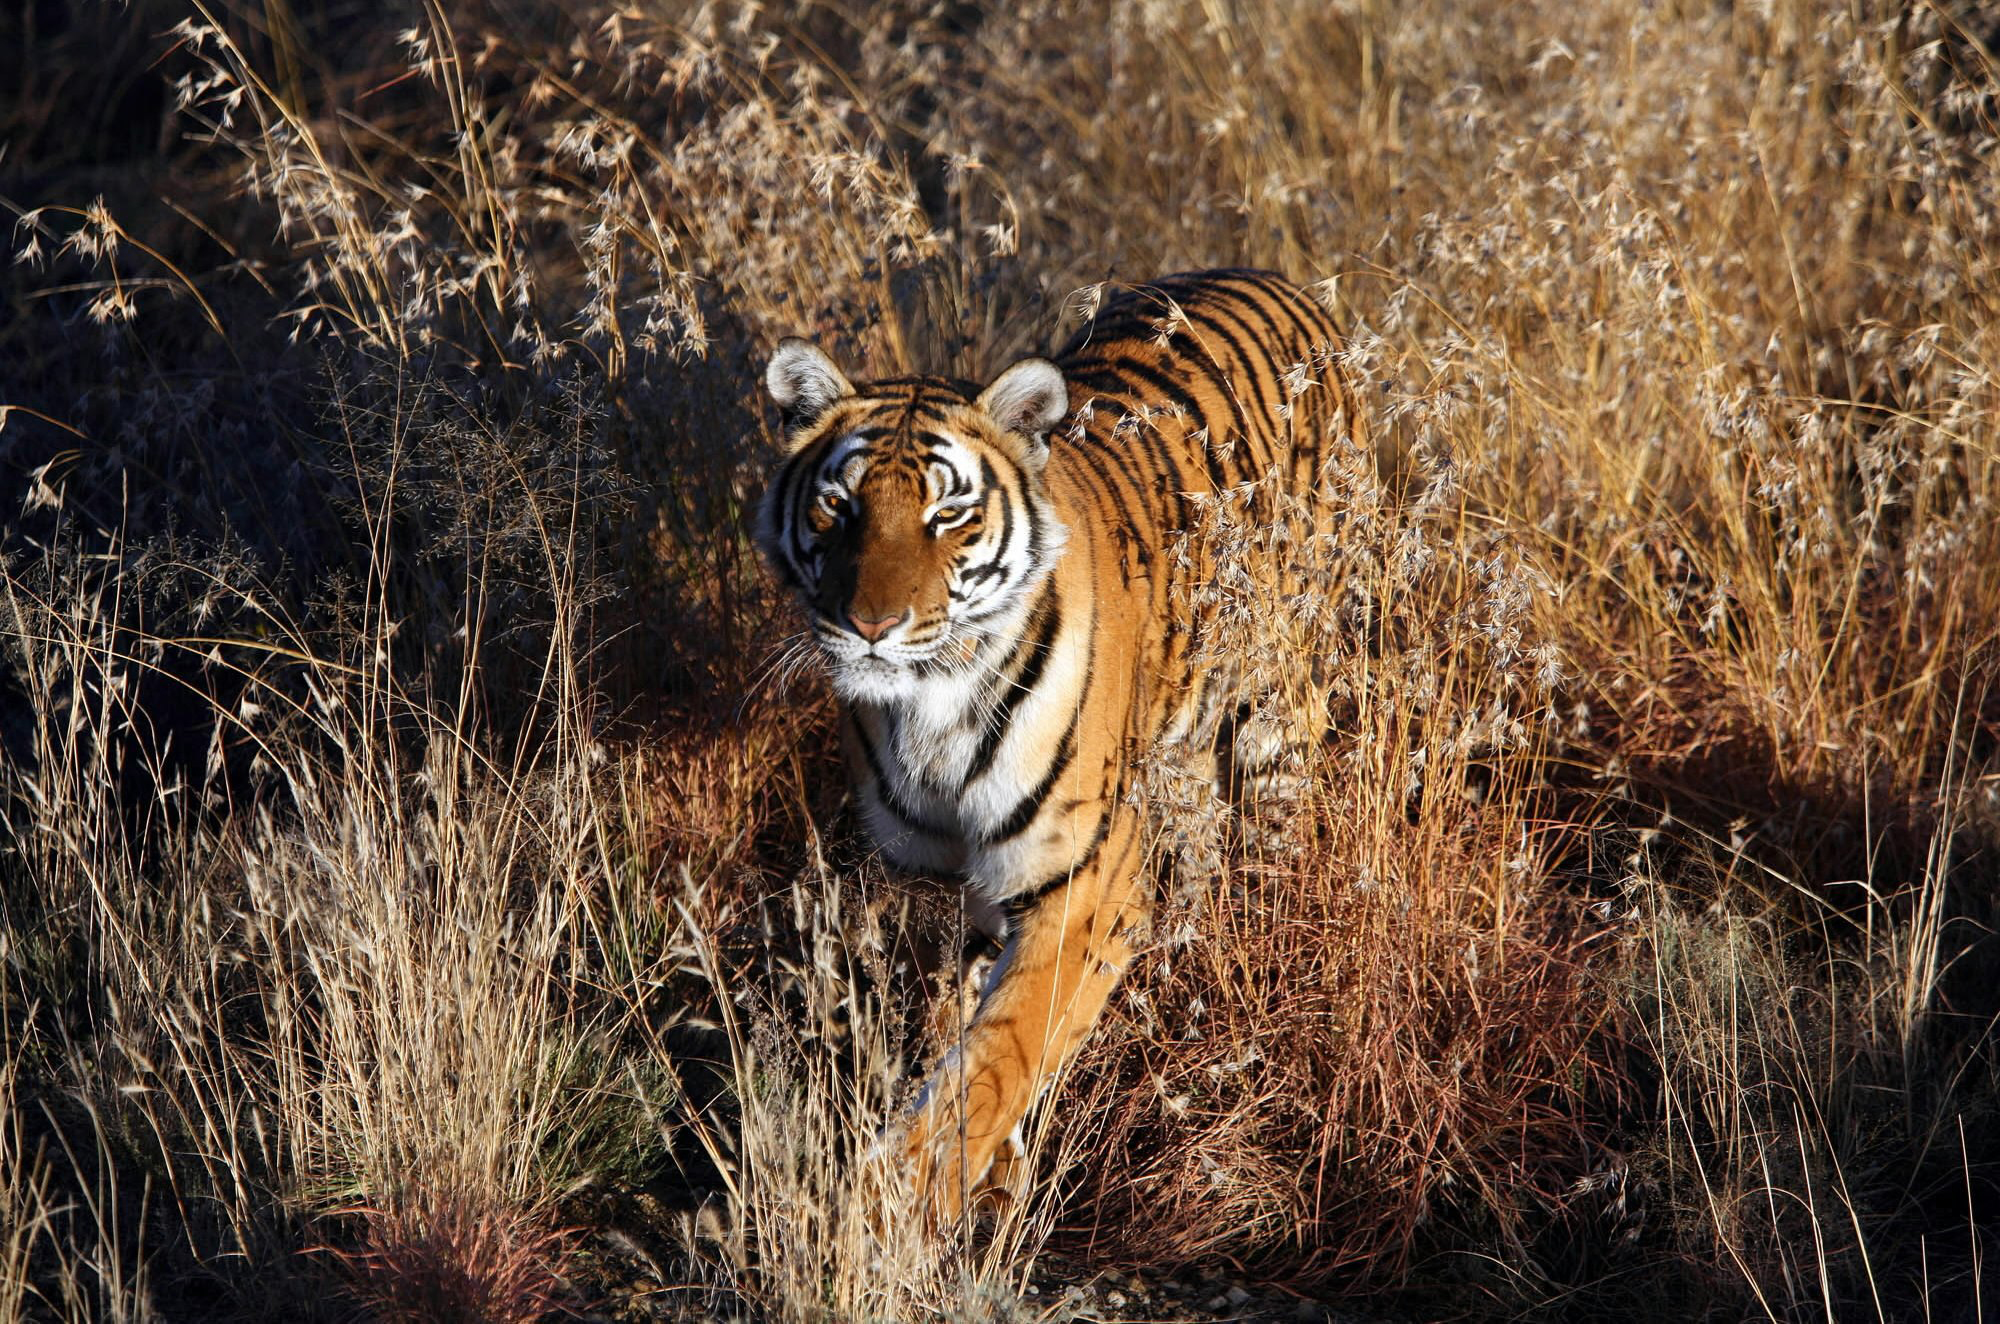 South China Tiger, Laohu Valley Reserve in Philippolis, South Africa on June 21, 2006. In the 1950s this species was hunted as a pest and is now considered functionally extinct. However, they can still be found in zoos and in South Africa, where there are plans to reintroduce captive-bred tigers back into the wild, as shown in the image here.